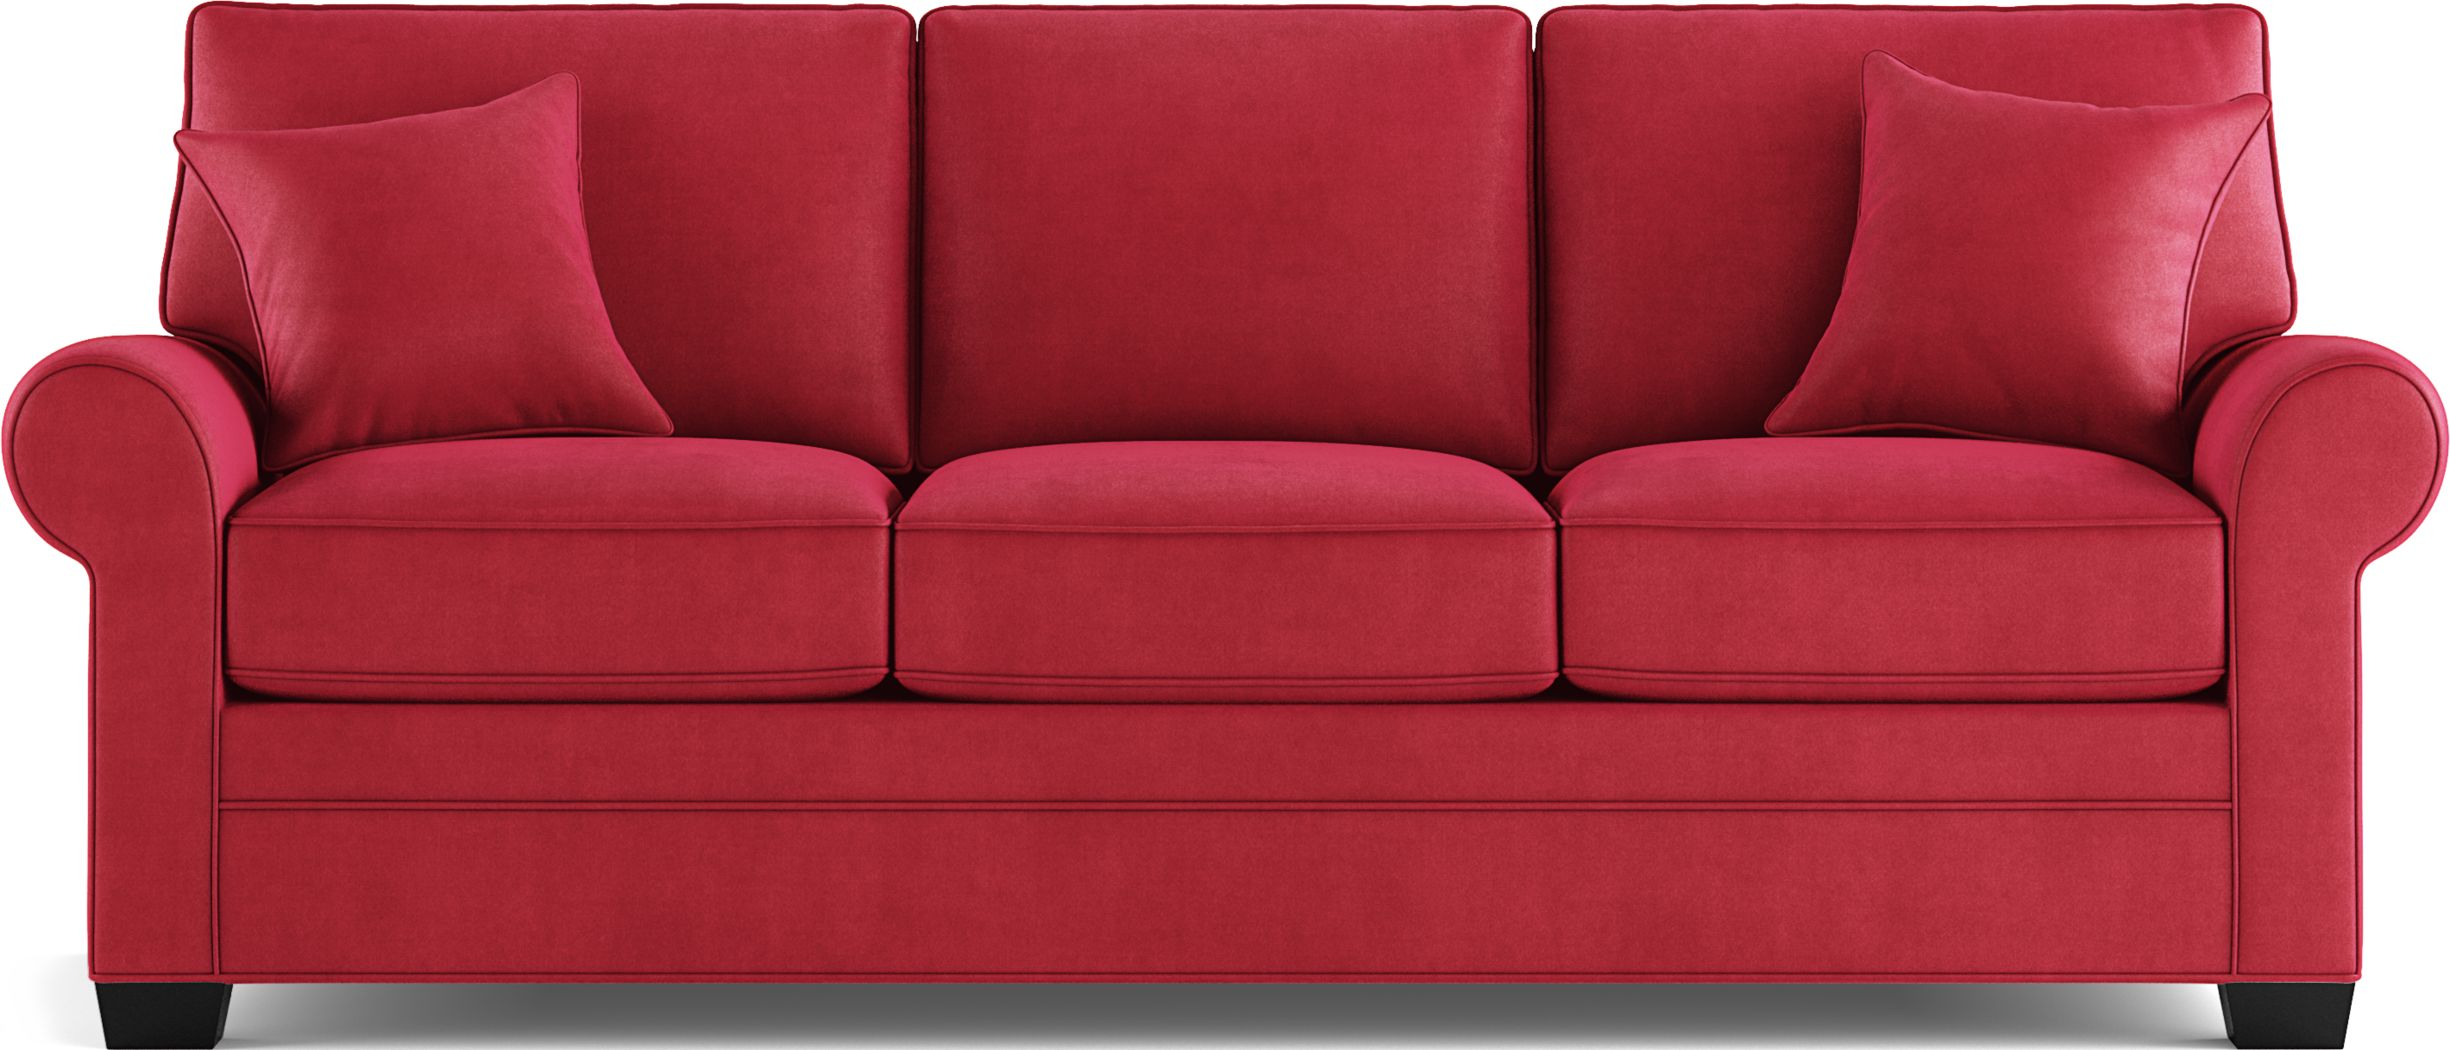 Red Sleeper Sofa Beds Pull Out Couches